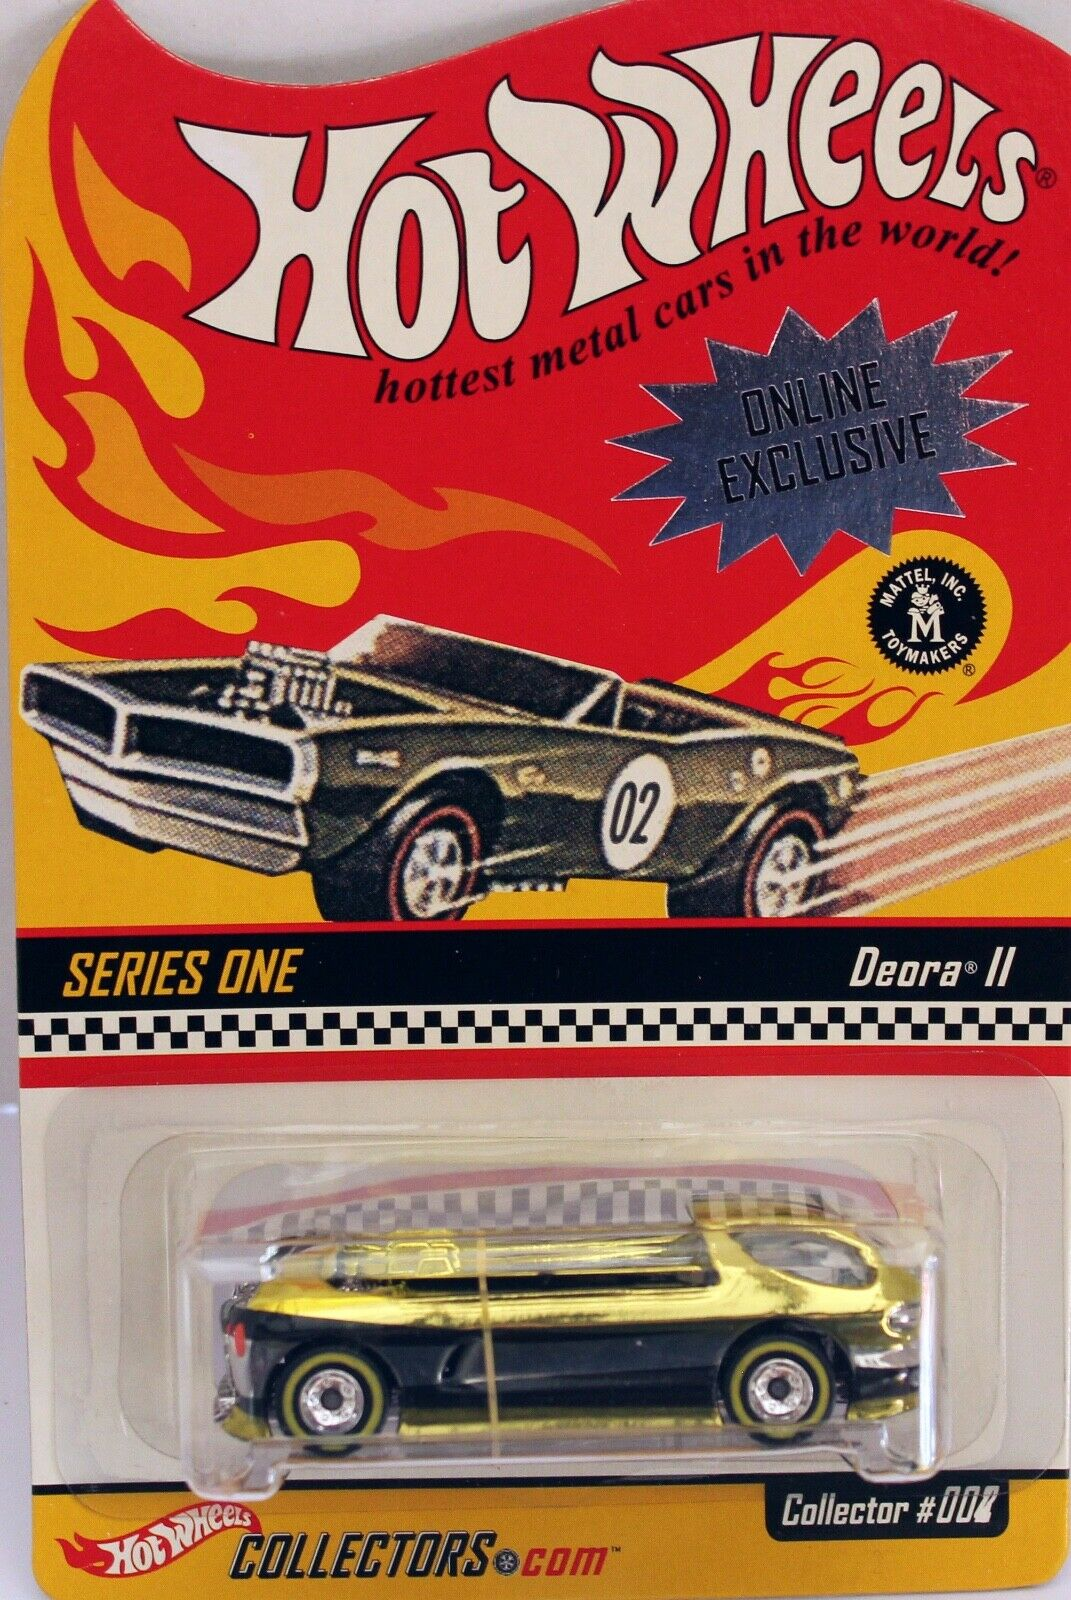 Hotwheels USA hotwheels club Deora Two Mint carded.